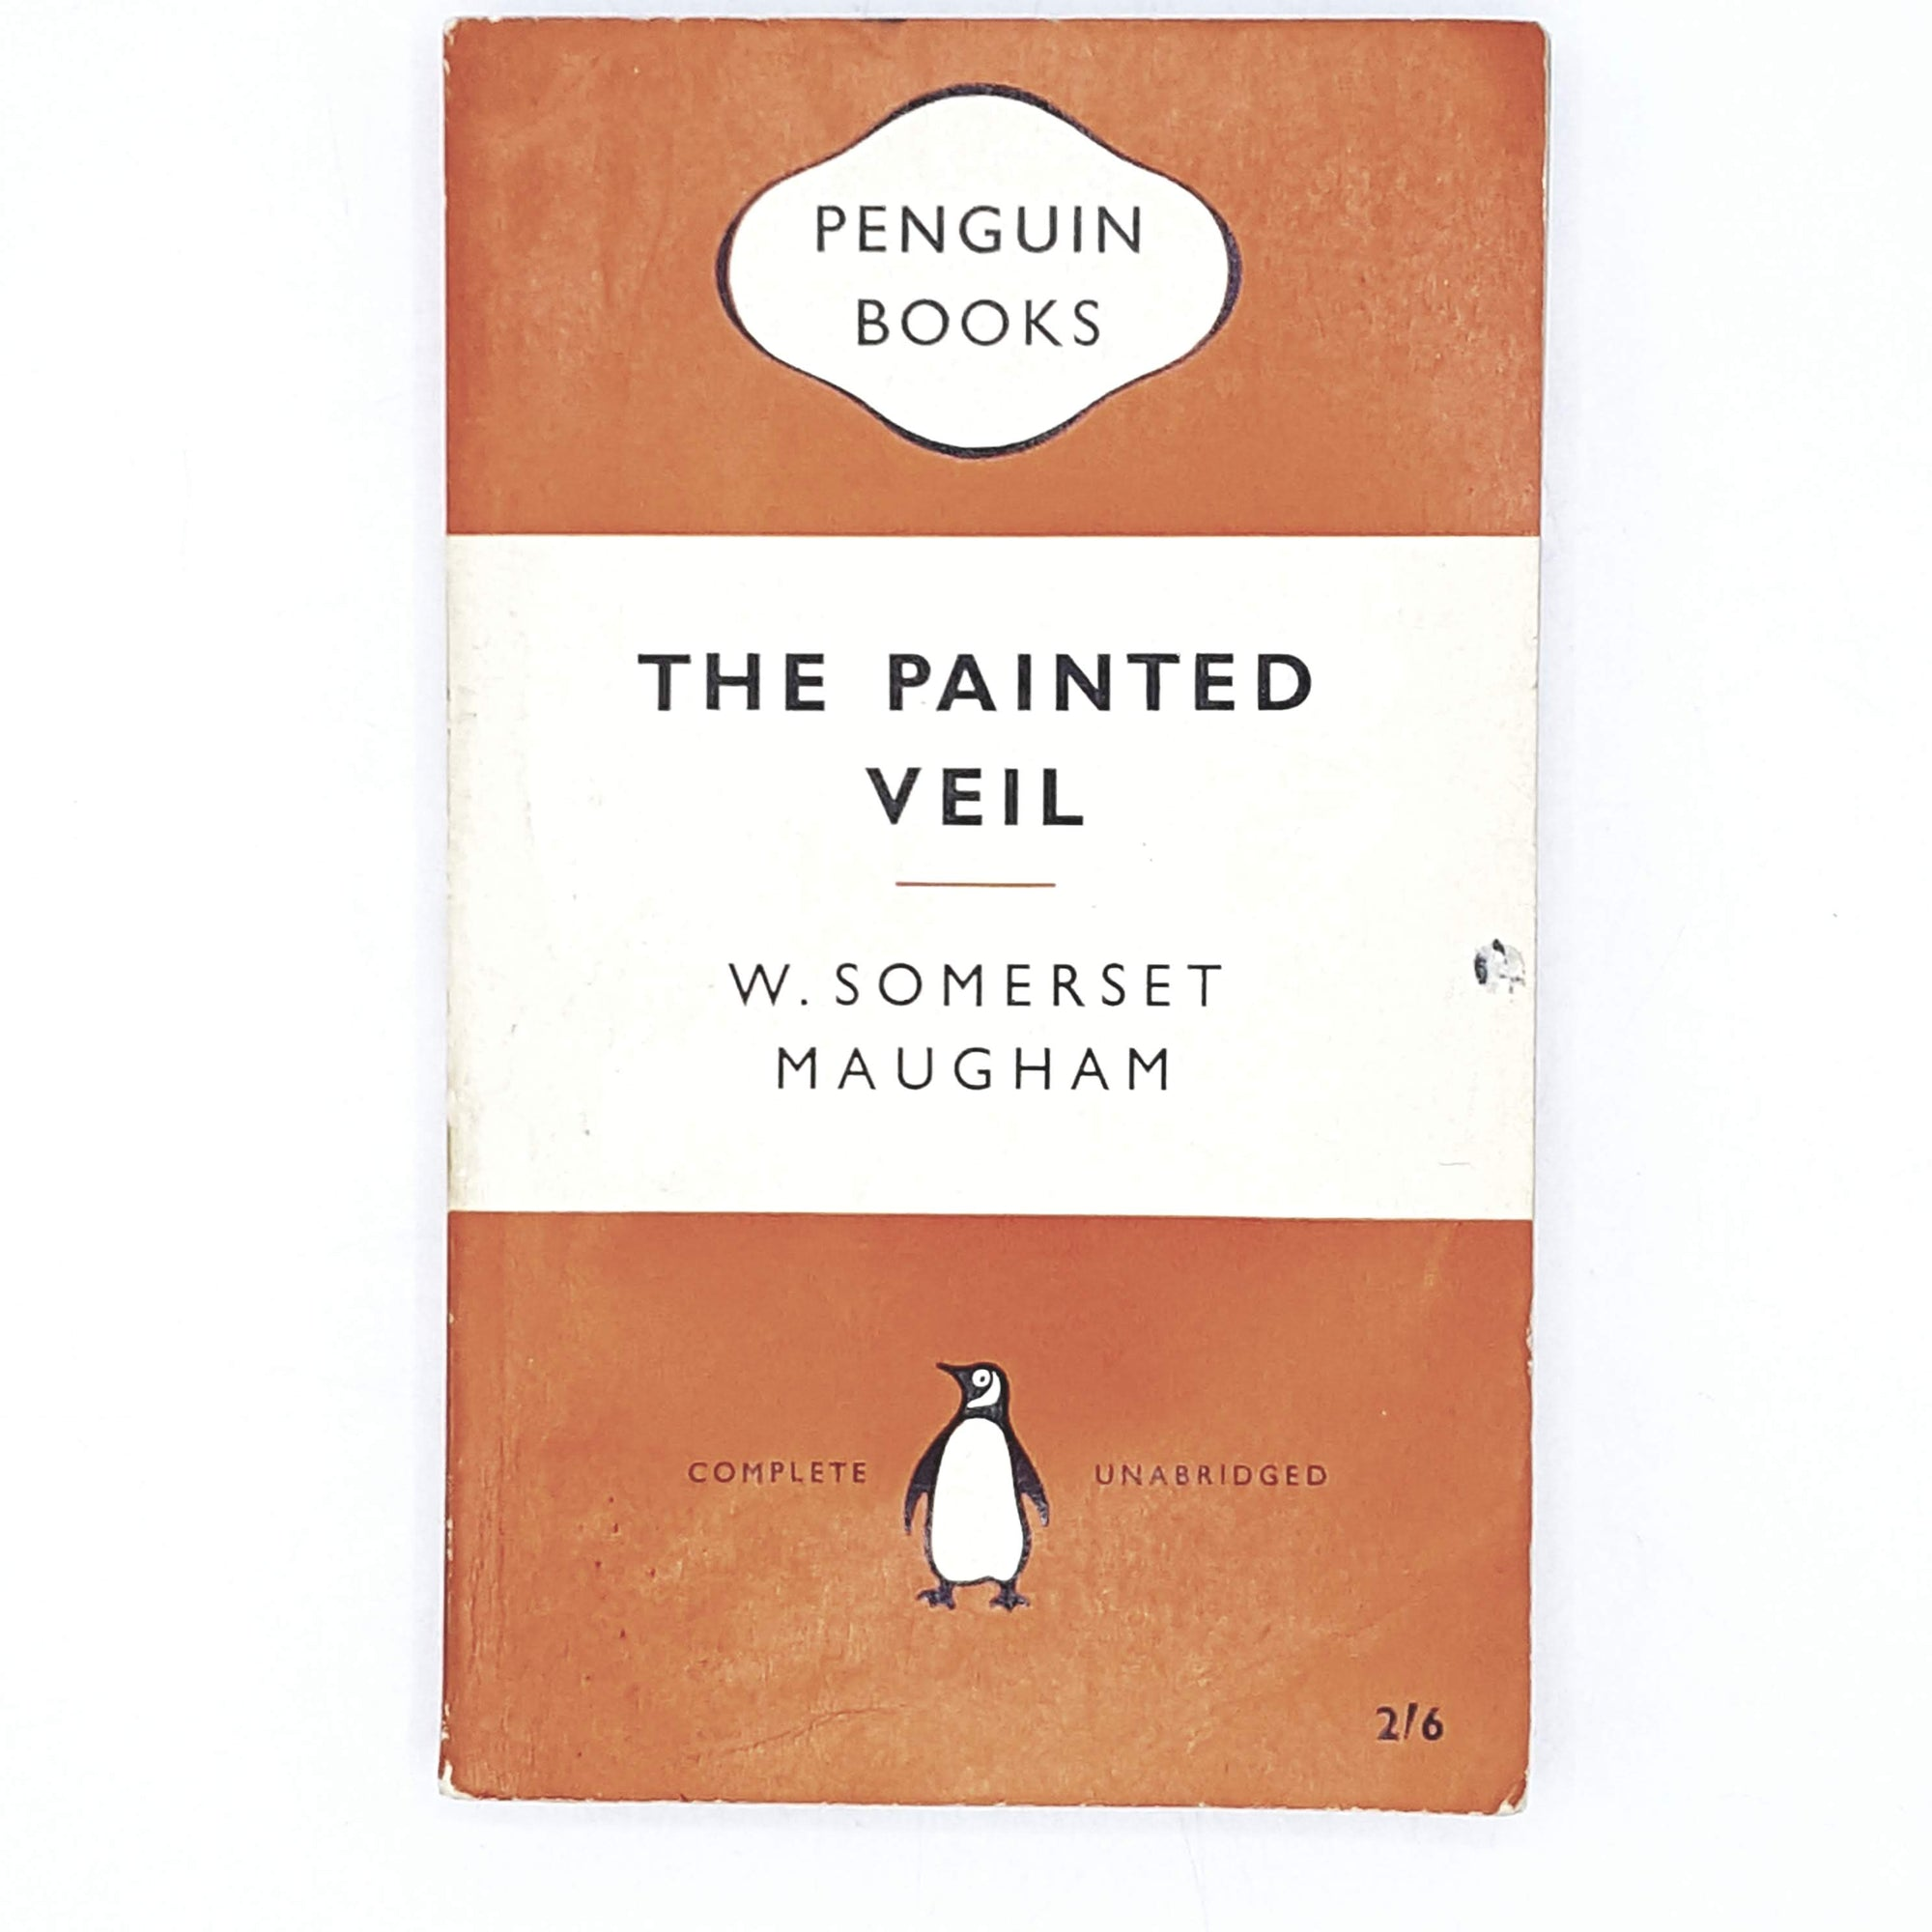 W. Somerset Maugham's The Painted Veil 1955